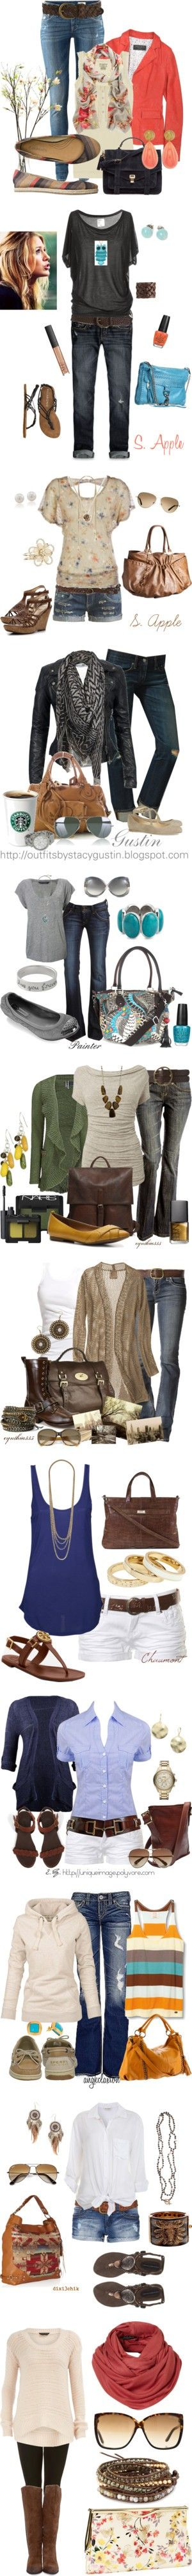 Fall Styles: Fashion, Clothes Clothes, Outfit Ideas, Clothing Style, Dream Closet, Cute Outfits, Clothesss, Fall Outfits, My Style